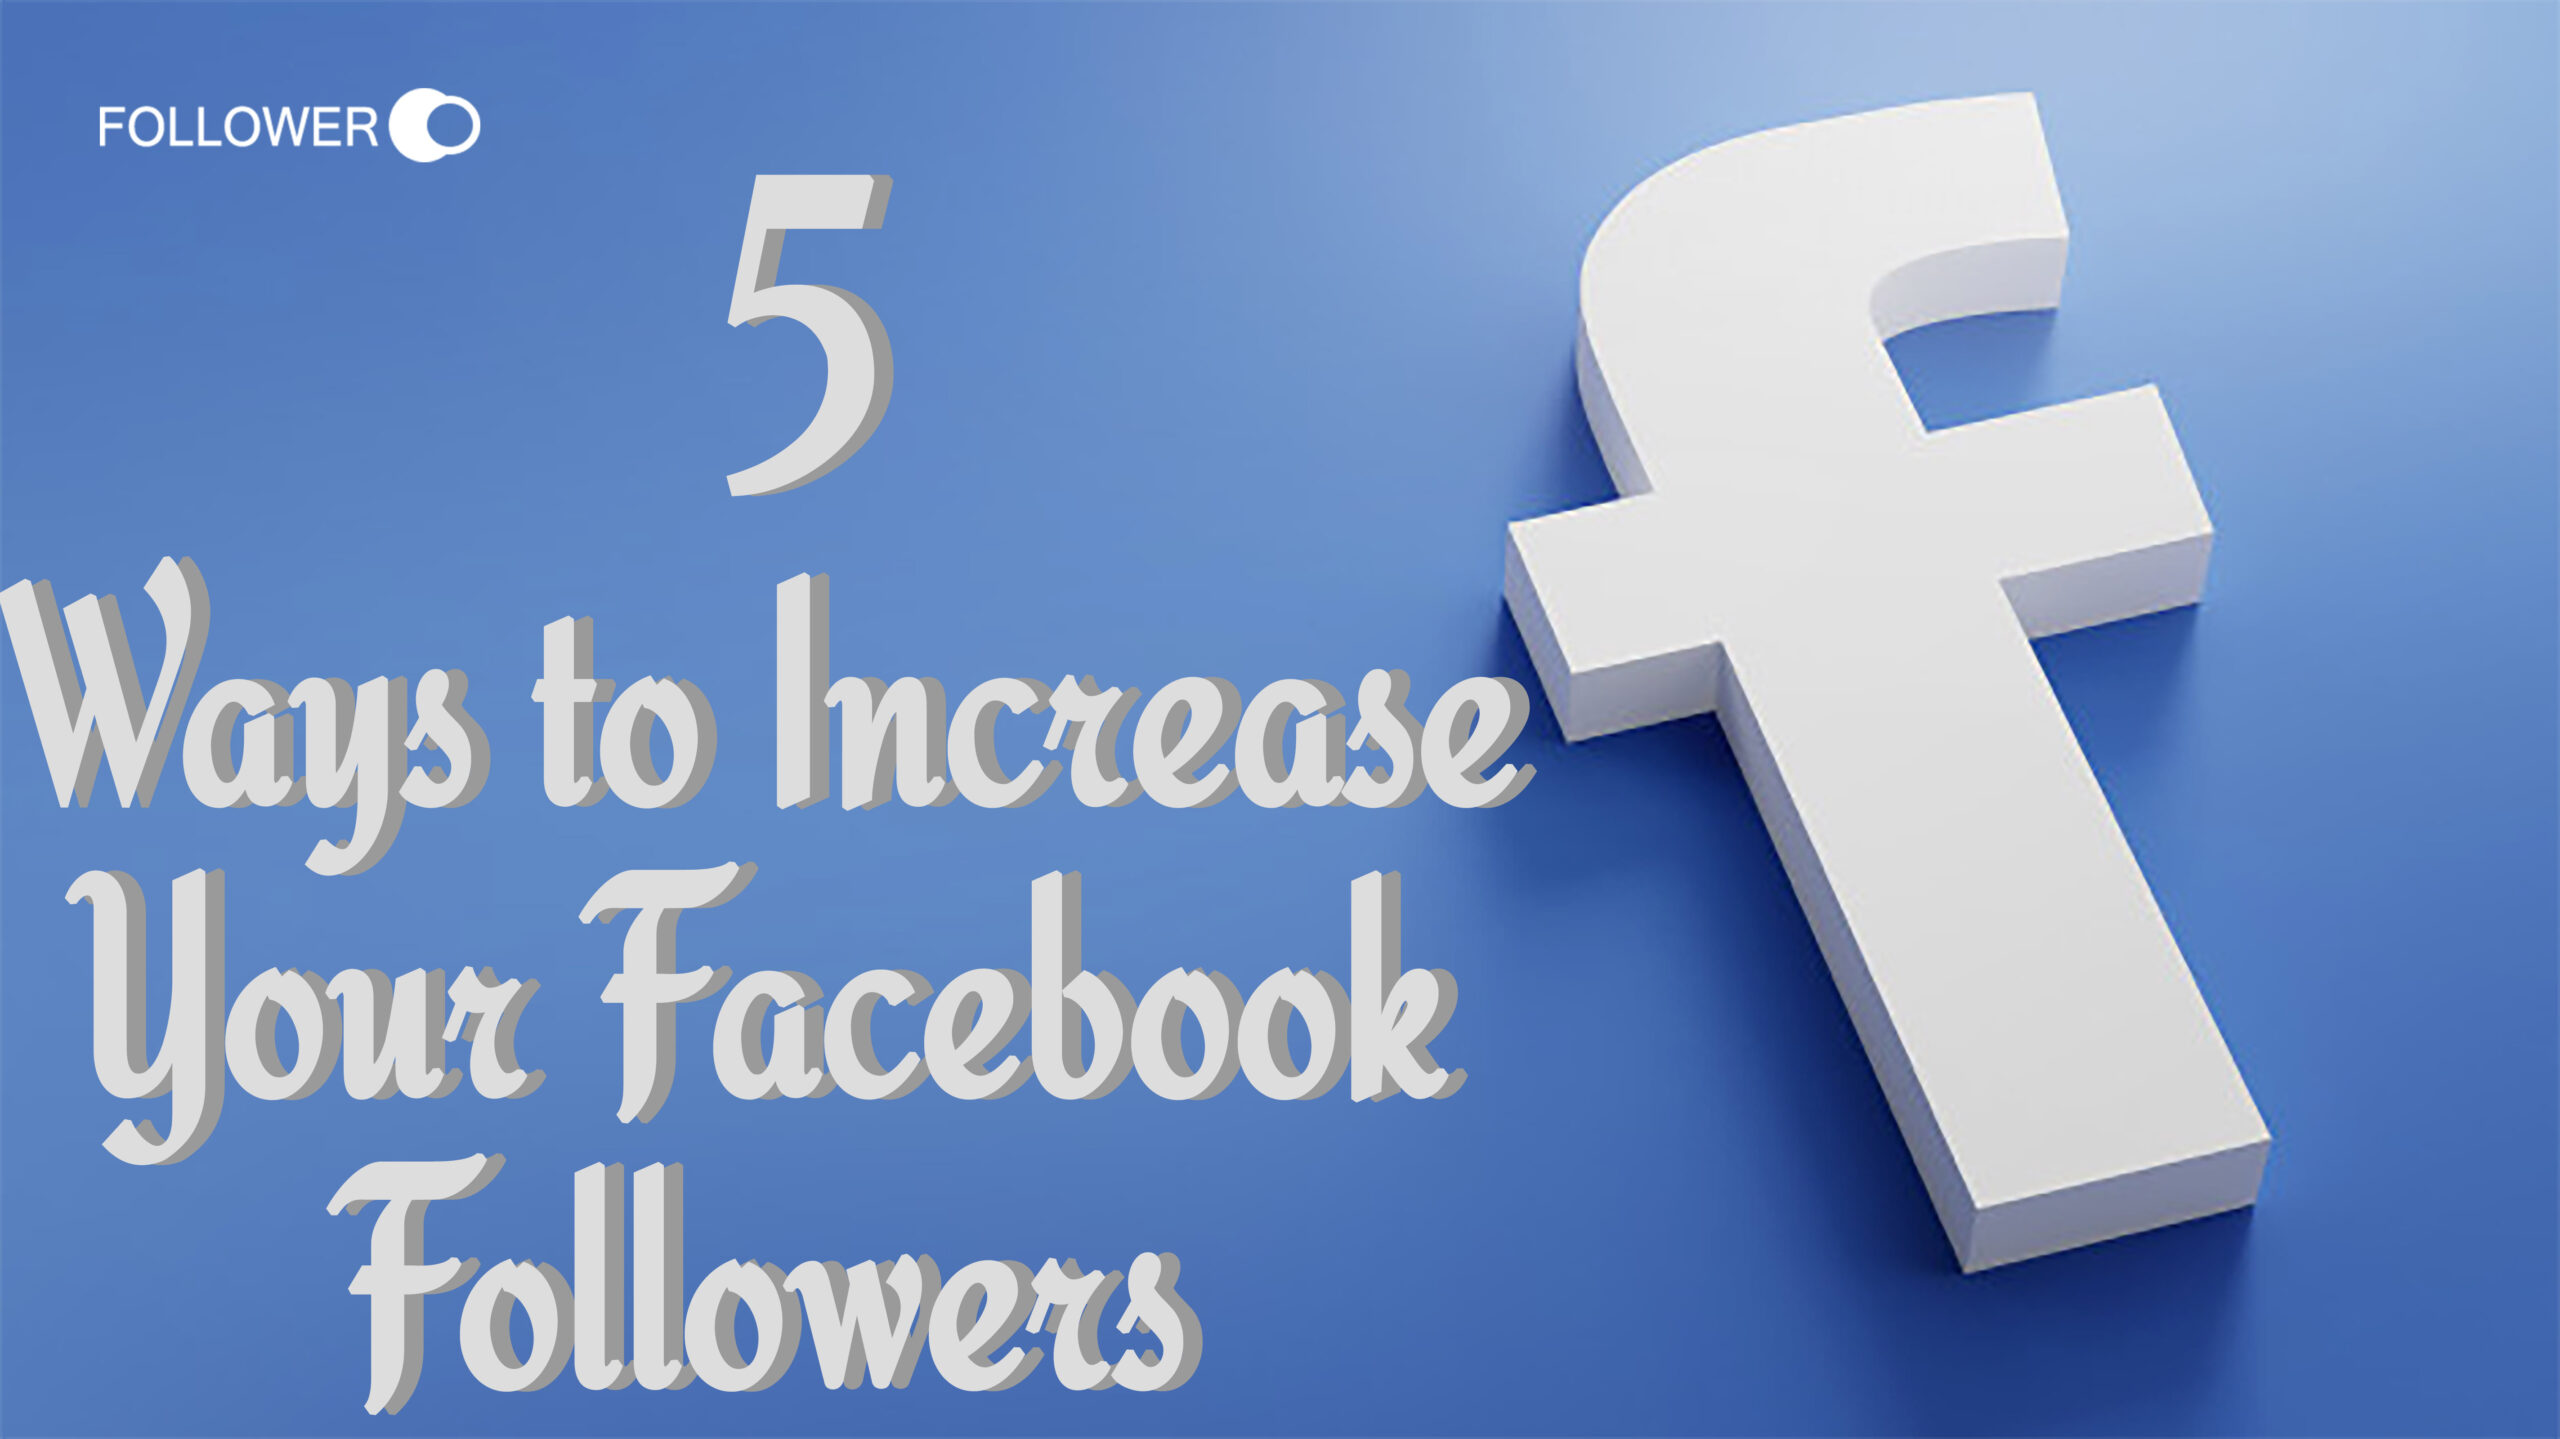 5 Ways to Increase Your Facebook Followers